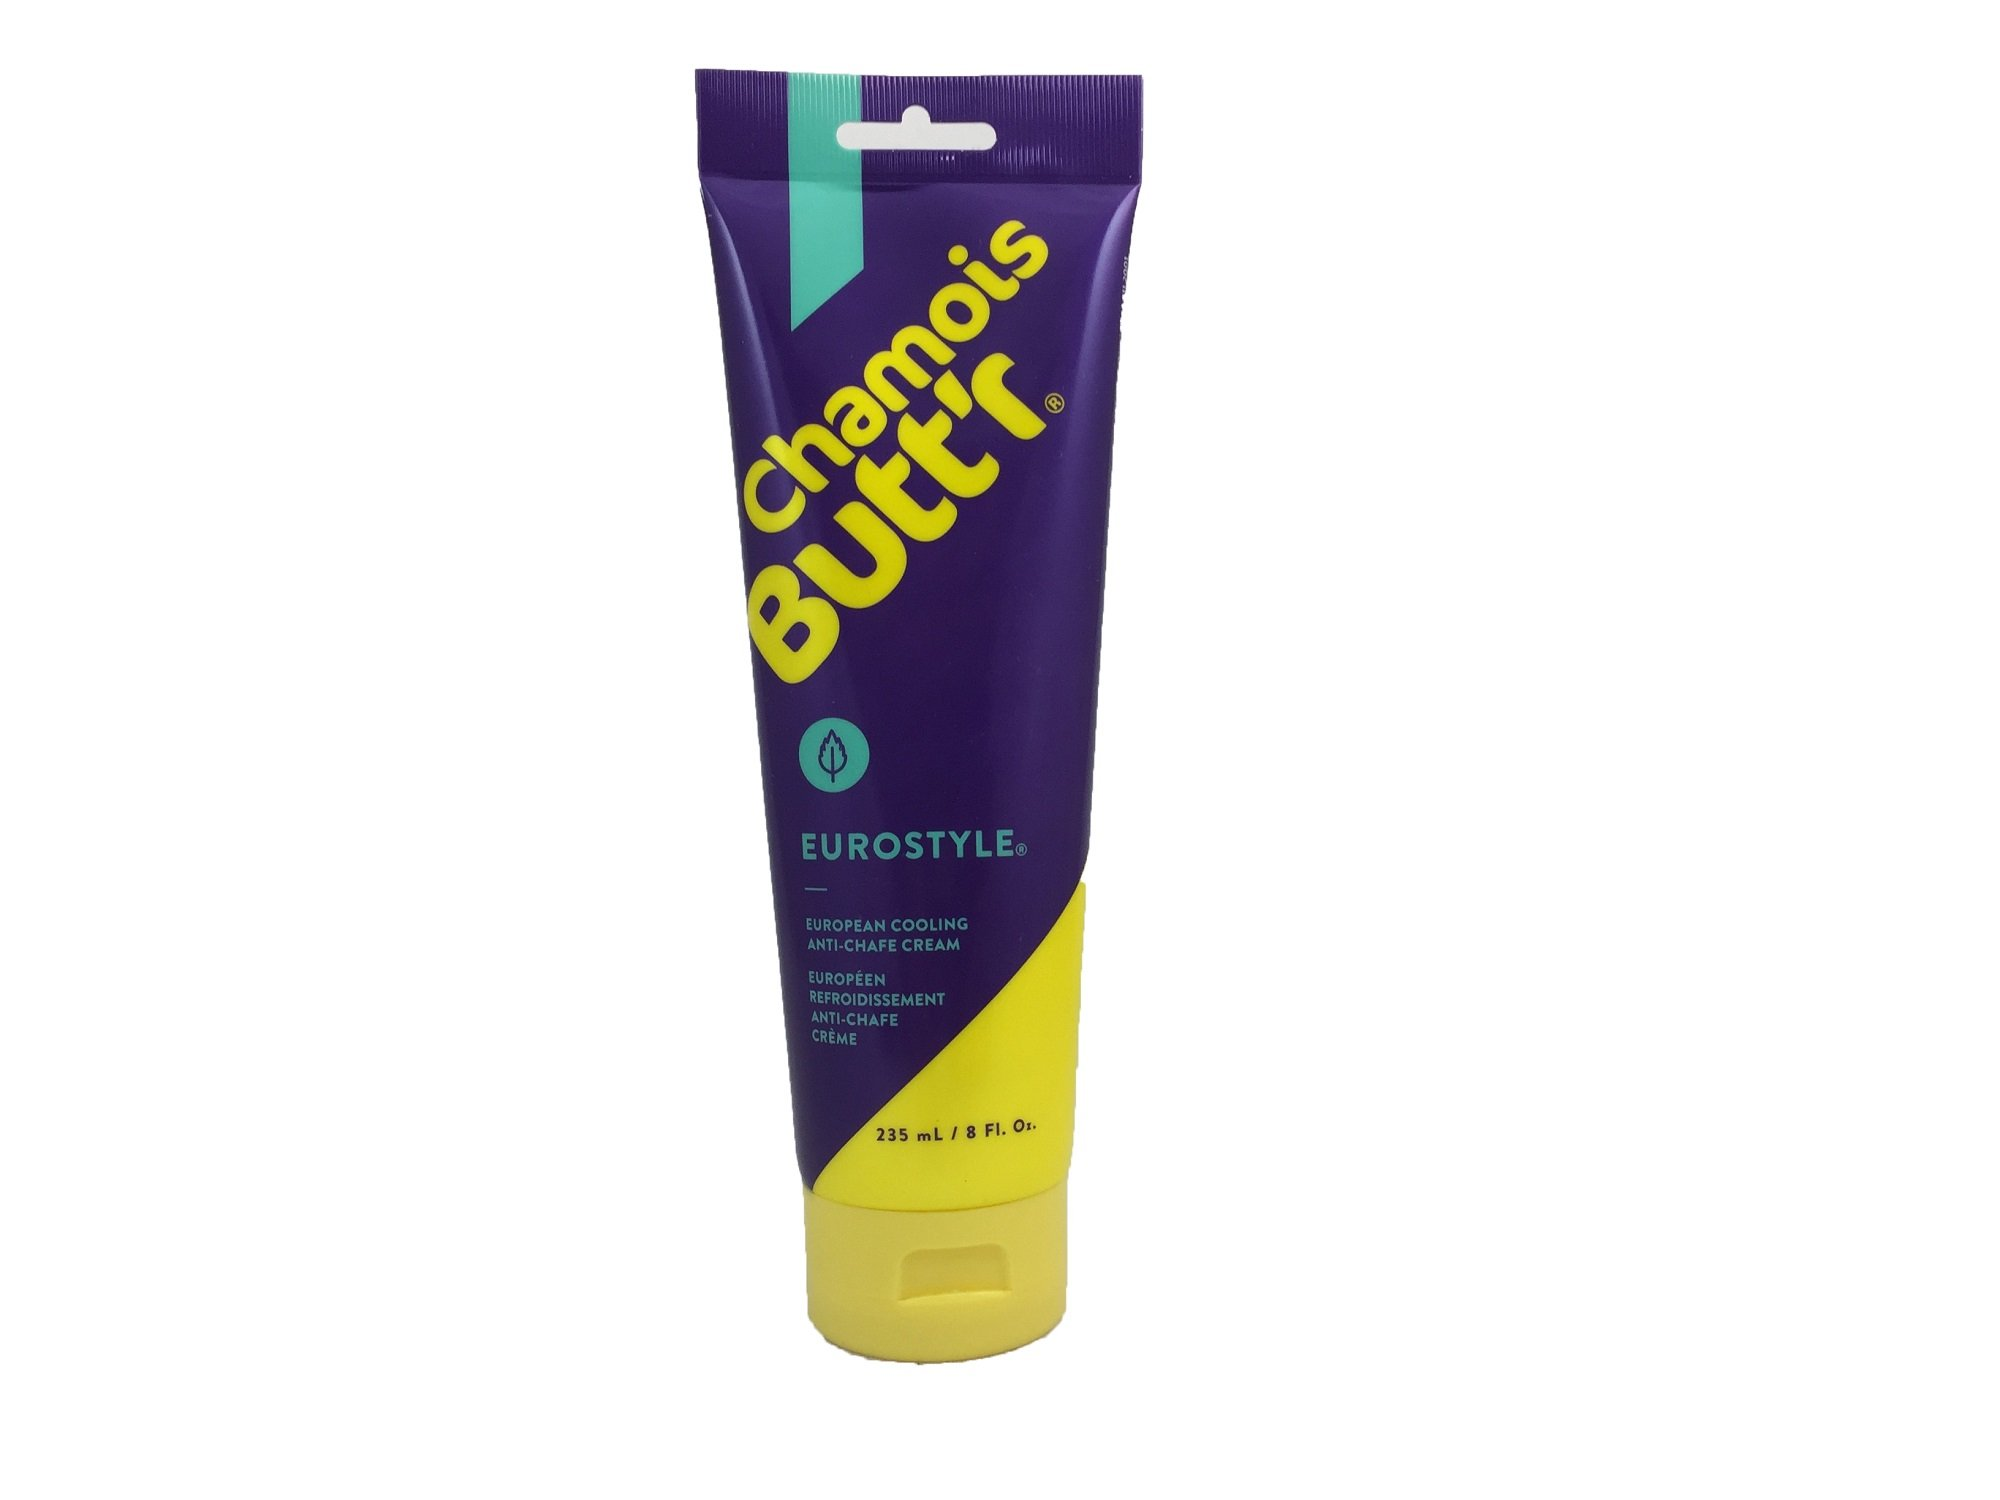 Chamois Butt'r Eurostyle Anti-Chafe Cream, 8 ounce tube by Chamois Butt'r (Image #1)